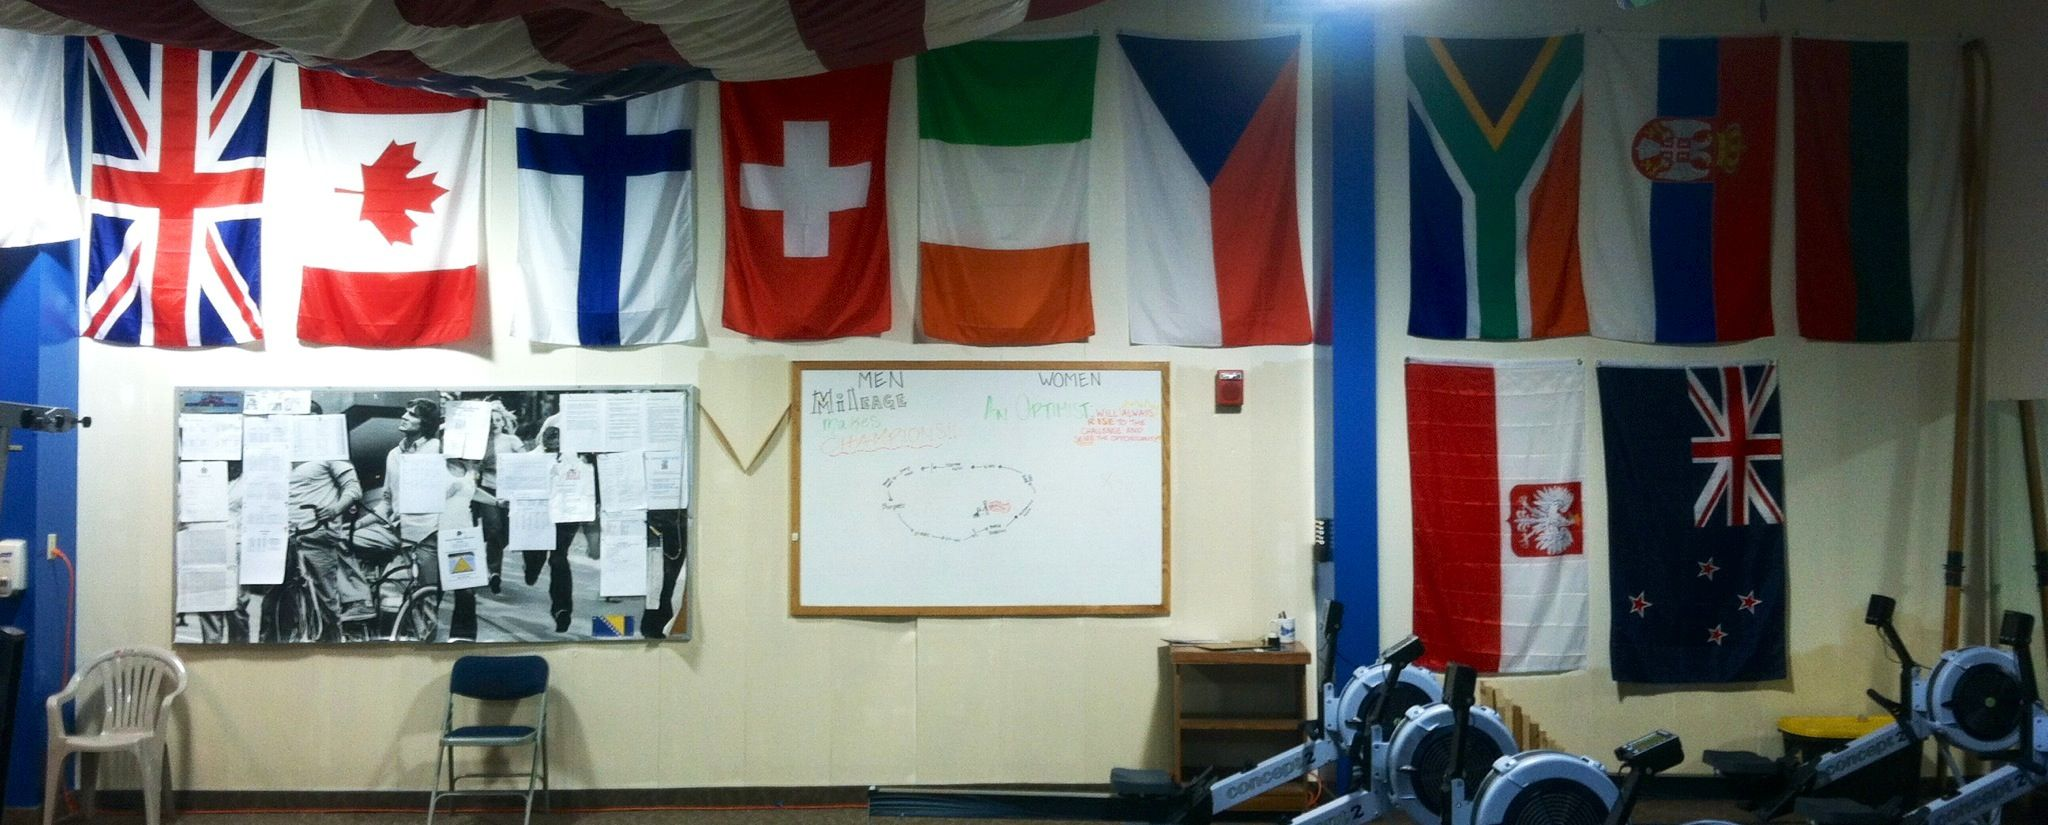 Mercyhurst Rowing represents our international flavor by bringing together different countries and cultures under one program of success.